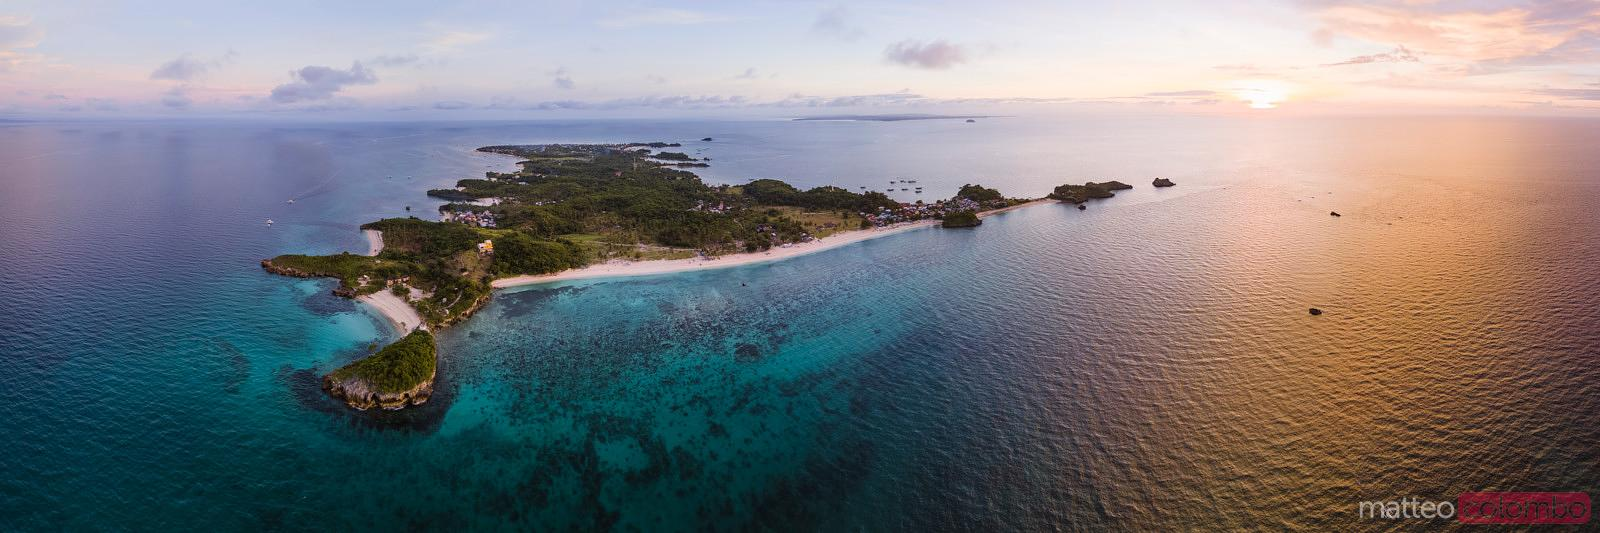 Aerial view of Malapascua island at sunset, Philippines